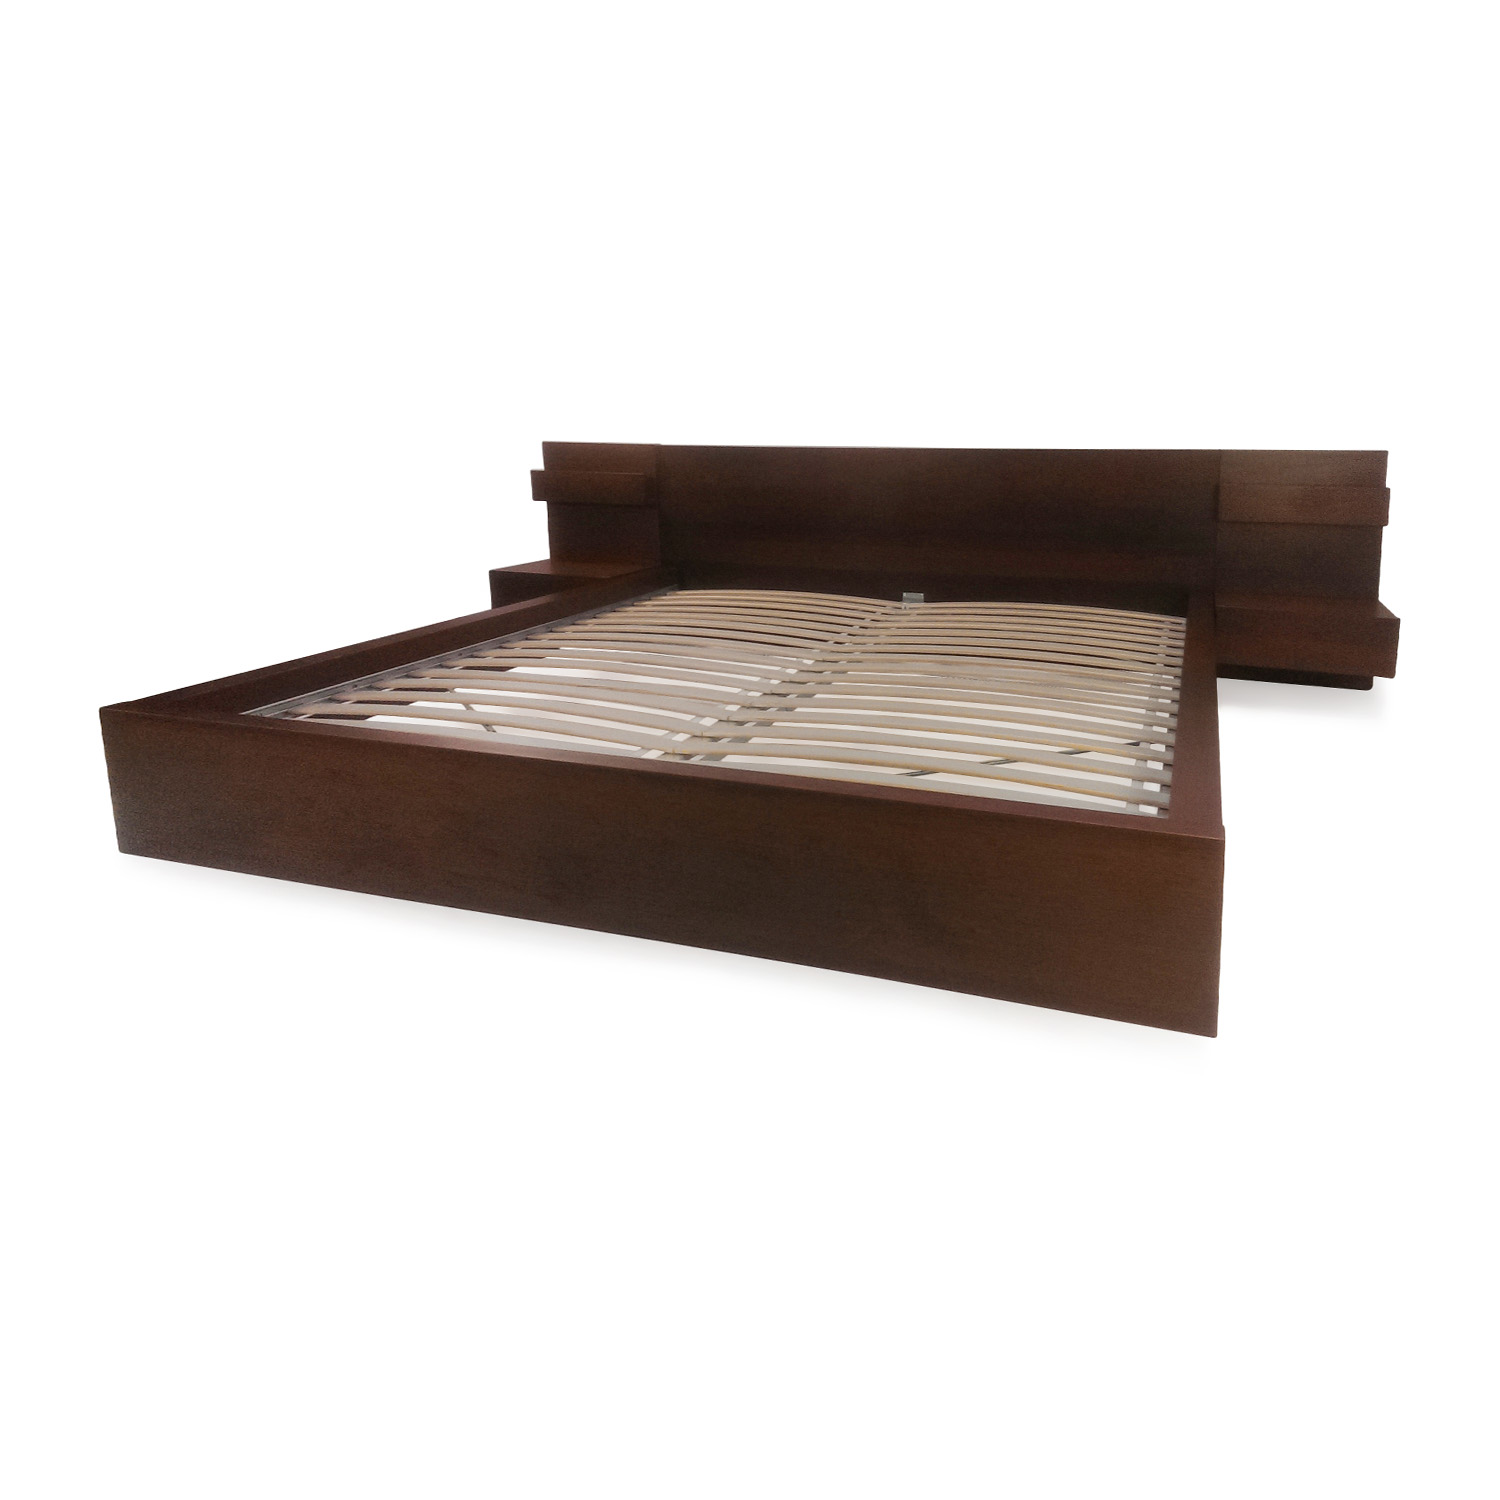 81 Off Ikea King Bed Frame With Headboard Beds